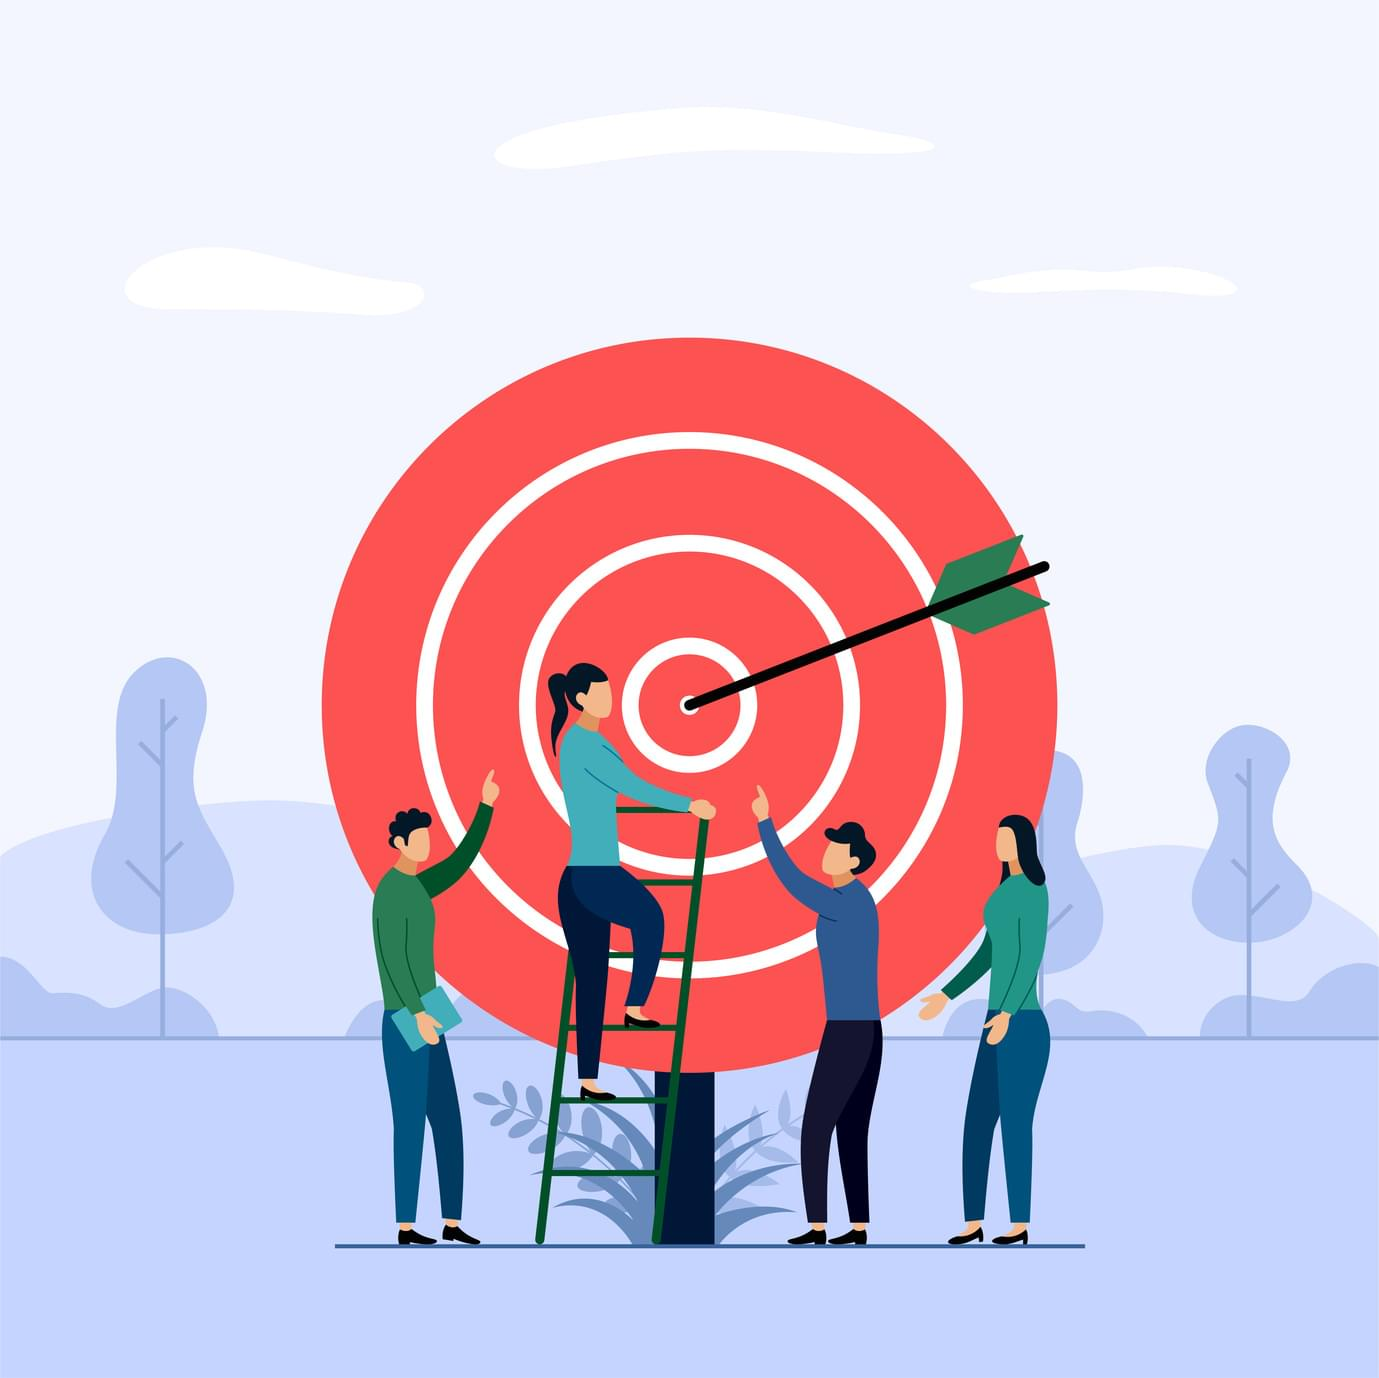 hit goals with employee management software